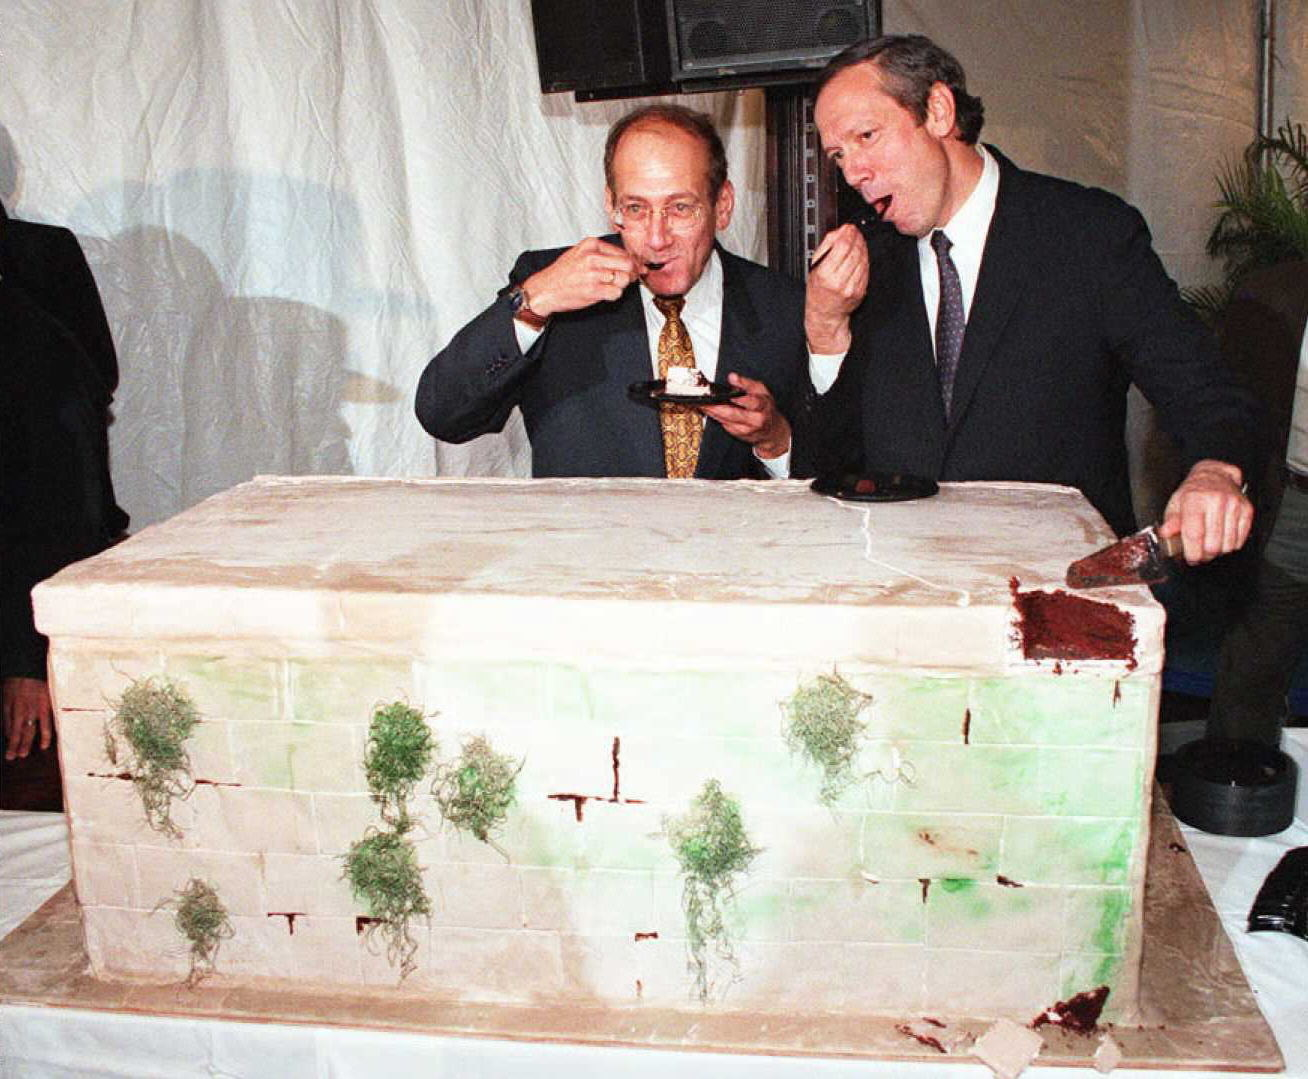 Two men eating bites out of cake shaped like a wall